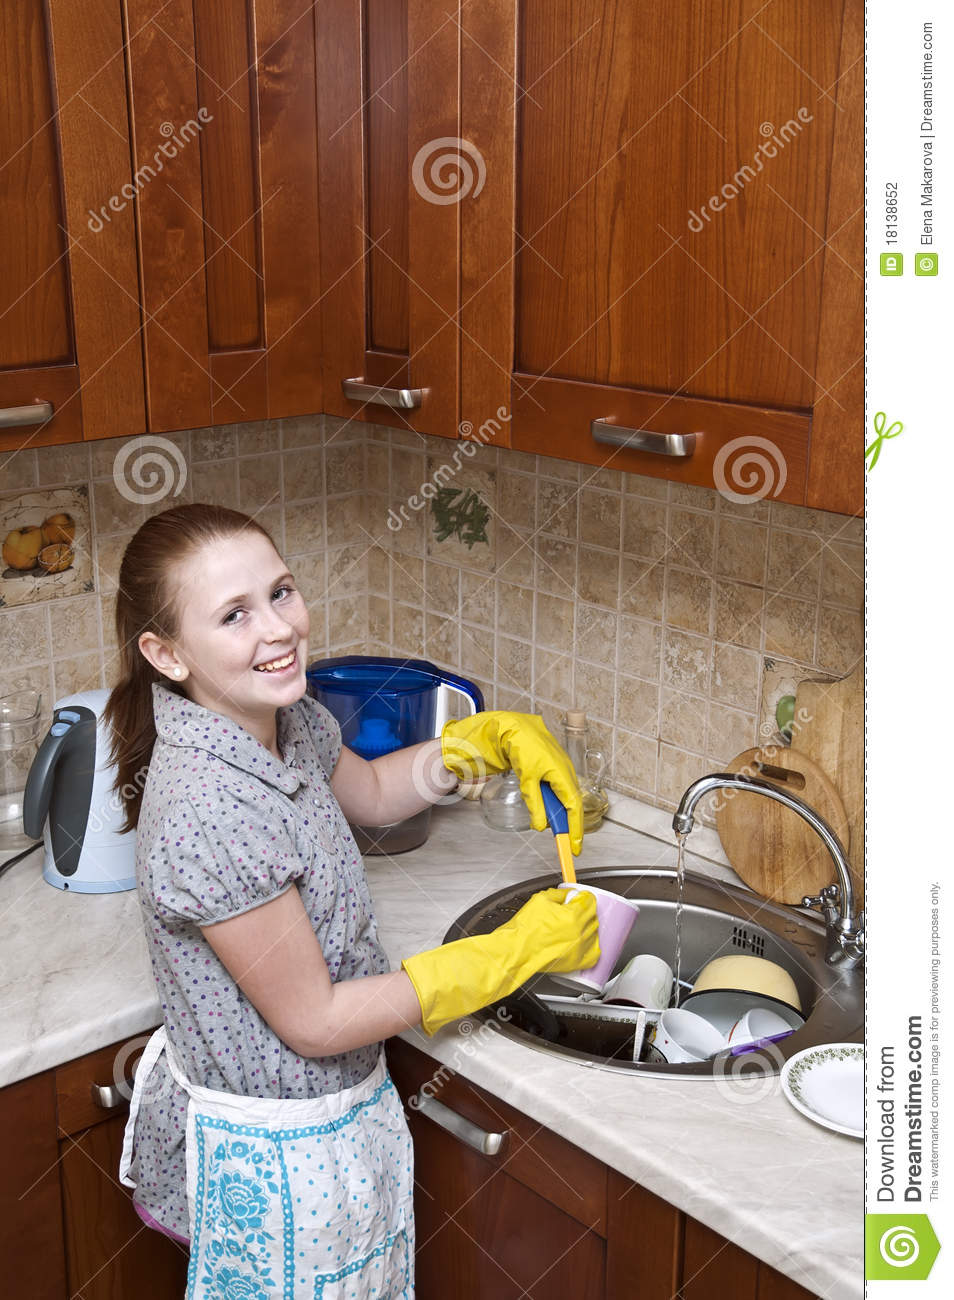 image: young-girl-cleaning-dishes-18138652